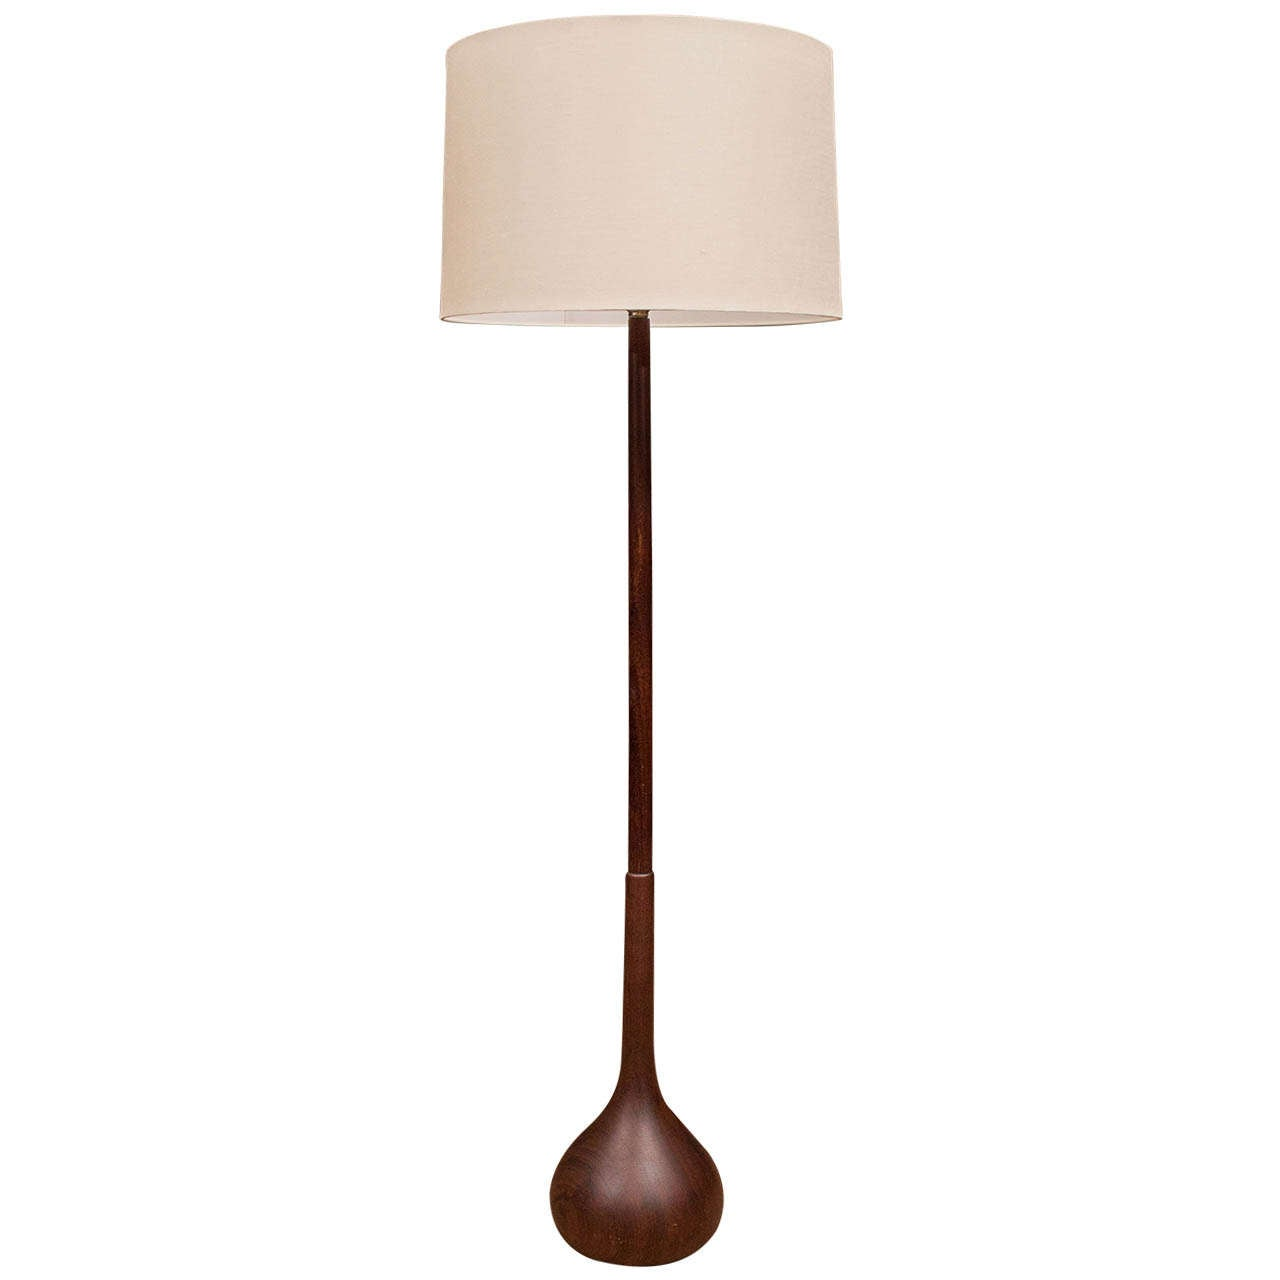 Organic Modern Floor Lamp At 1stdibs